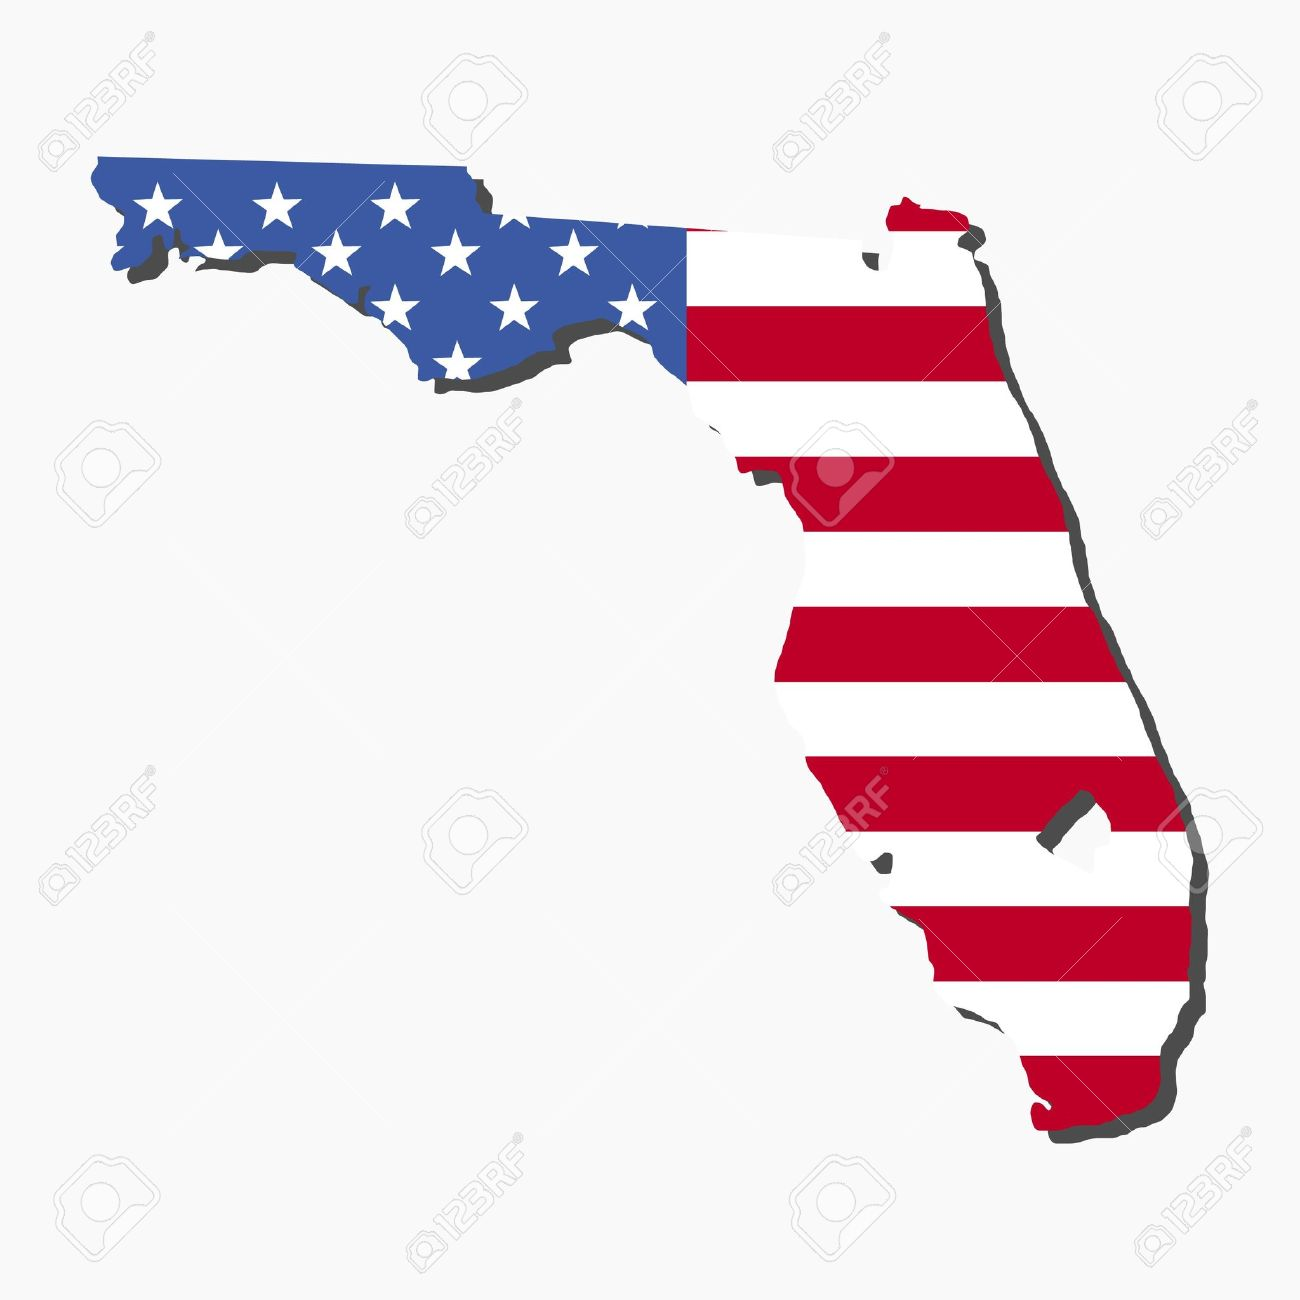 Map Of The State Of Florida And American Flag Illustration Stock - Us map florida state